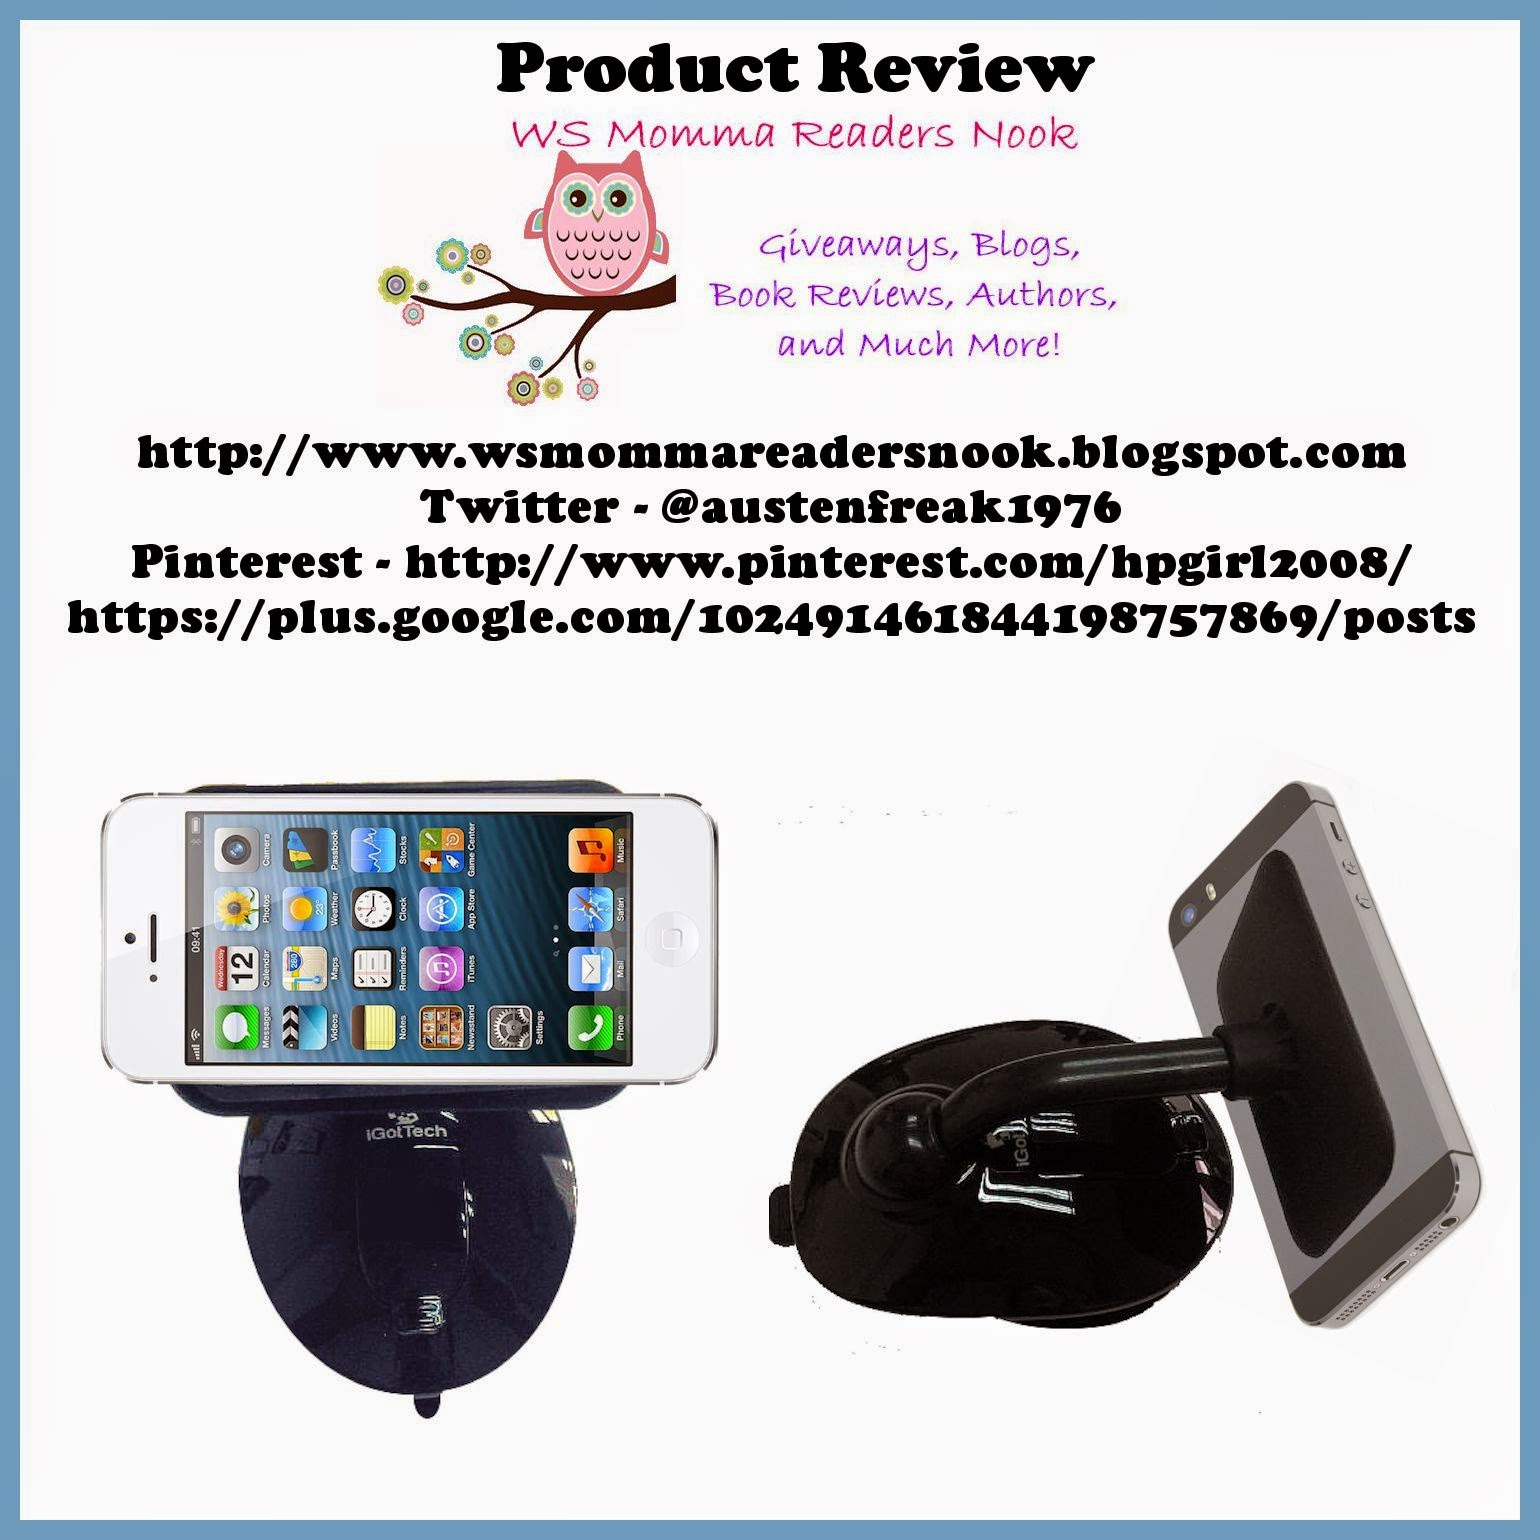 http://www.amazon.com/Cell-Phone-Holder-Smartphone-Accessories/dp/B00LETVK8W/ref=sr_1_1?ie=UTF8&qid=1412656370&sr=8-1&keywords=igottech+sticky+suction+stand